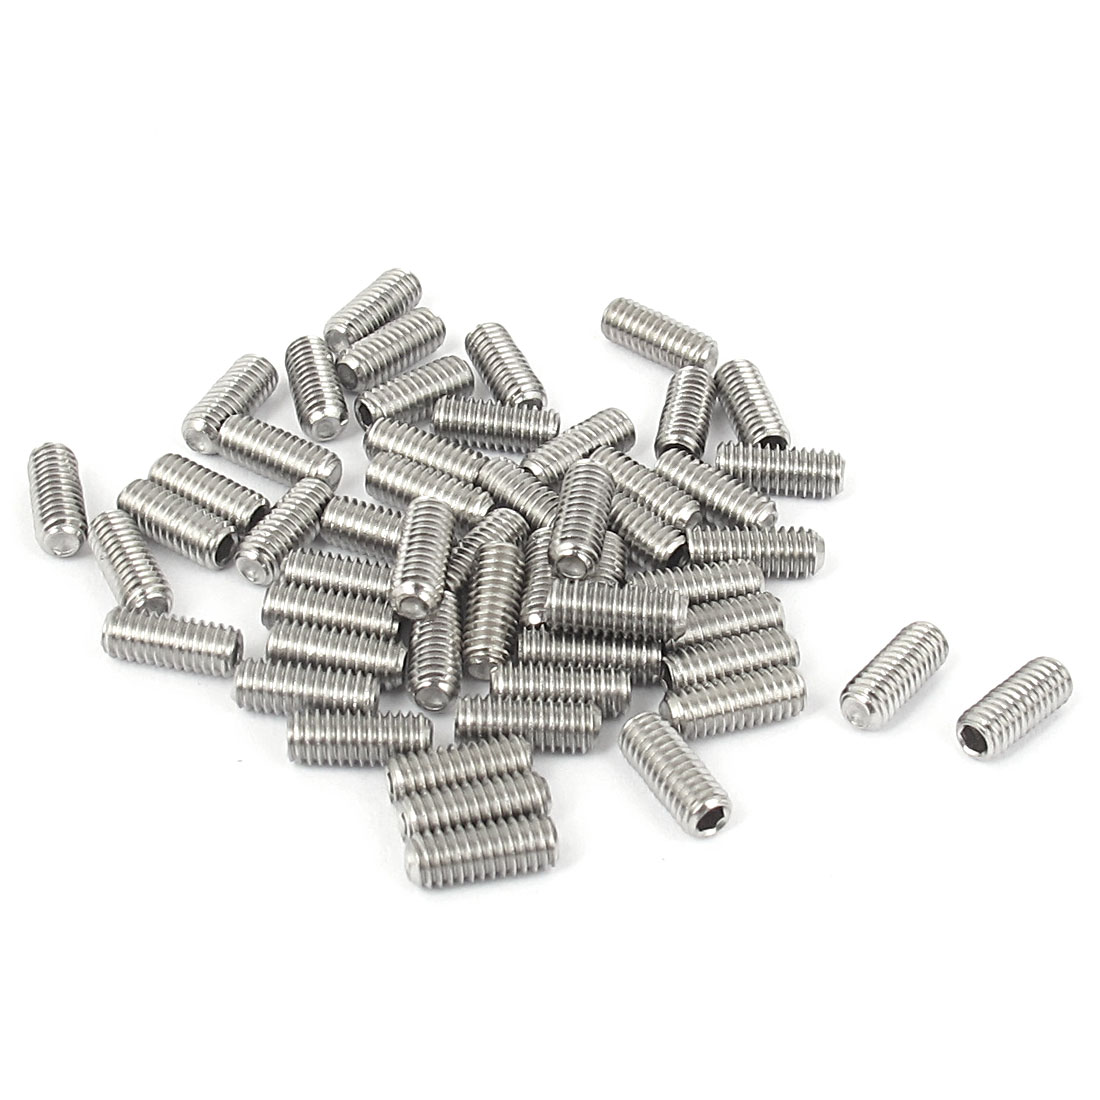 M4x10mm Stainless Steel Hex Socket Set Cap Point Grub Screws Silver Tone 50pcs